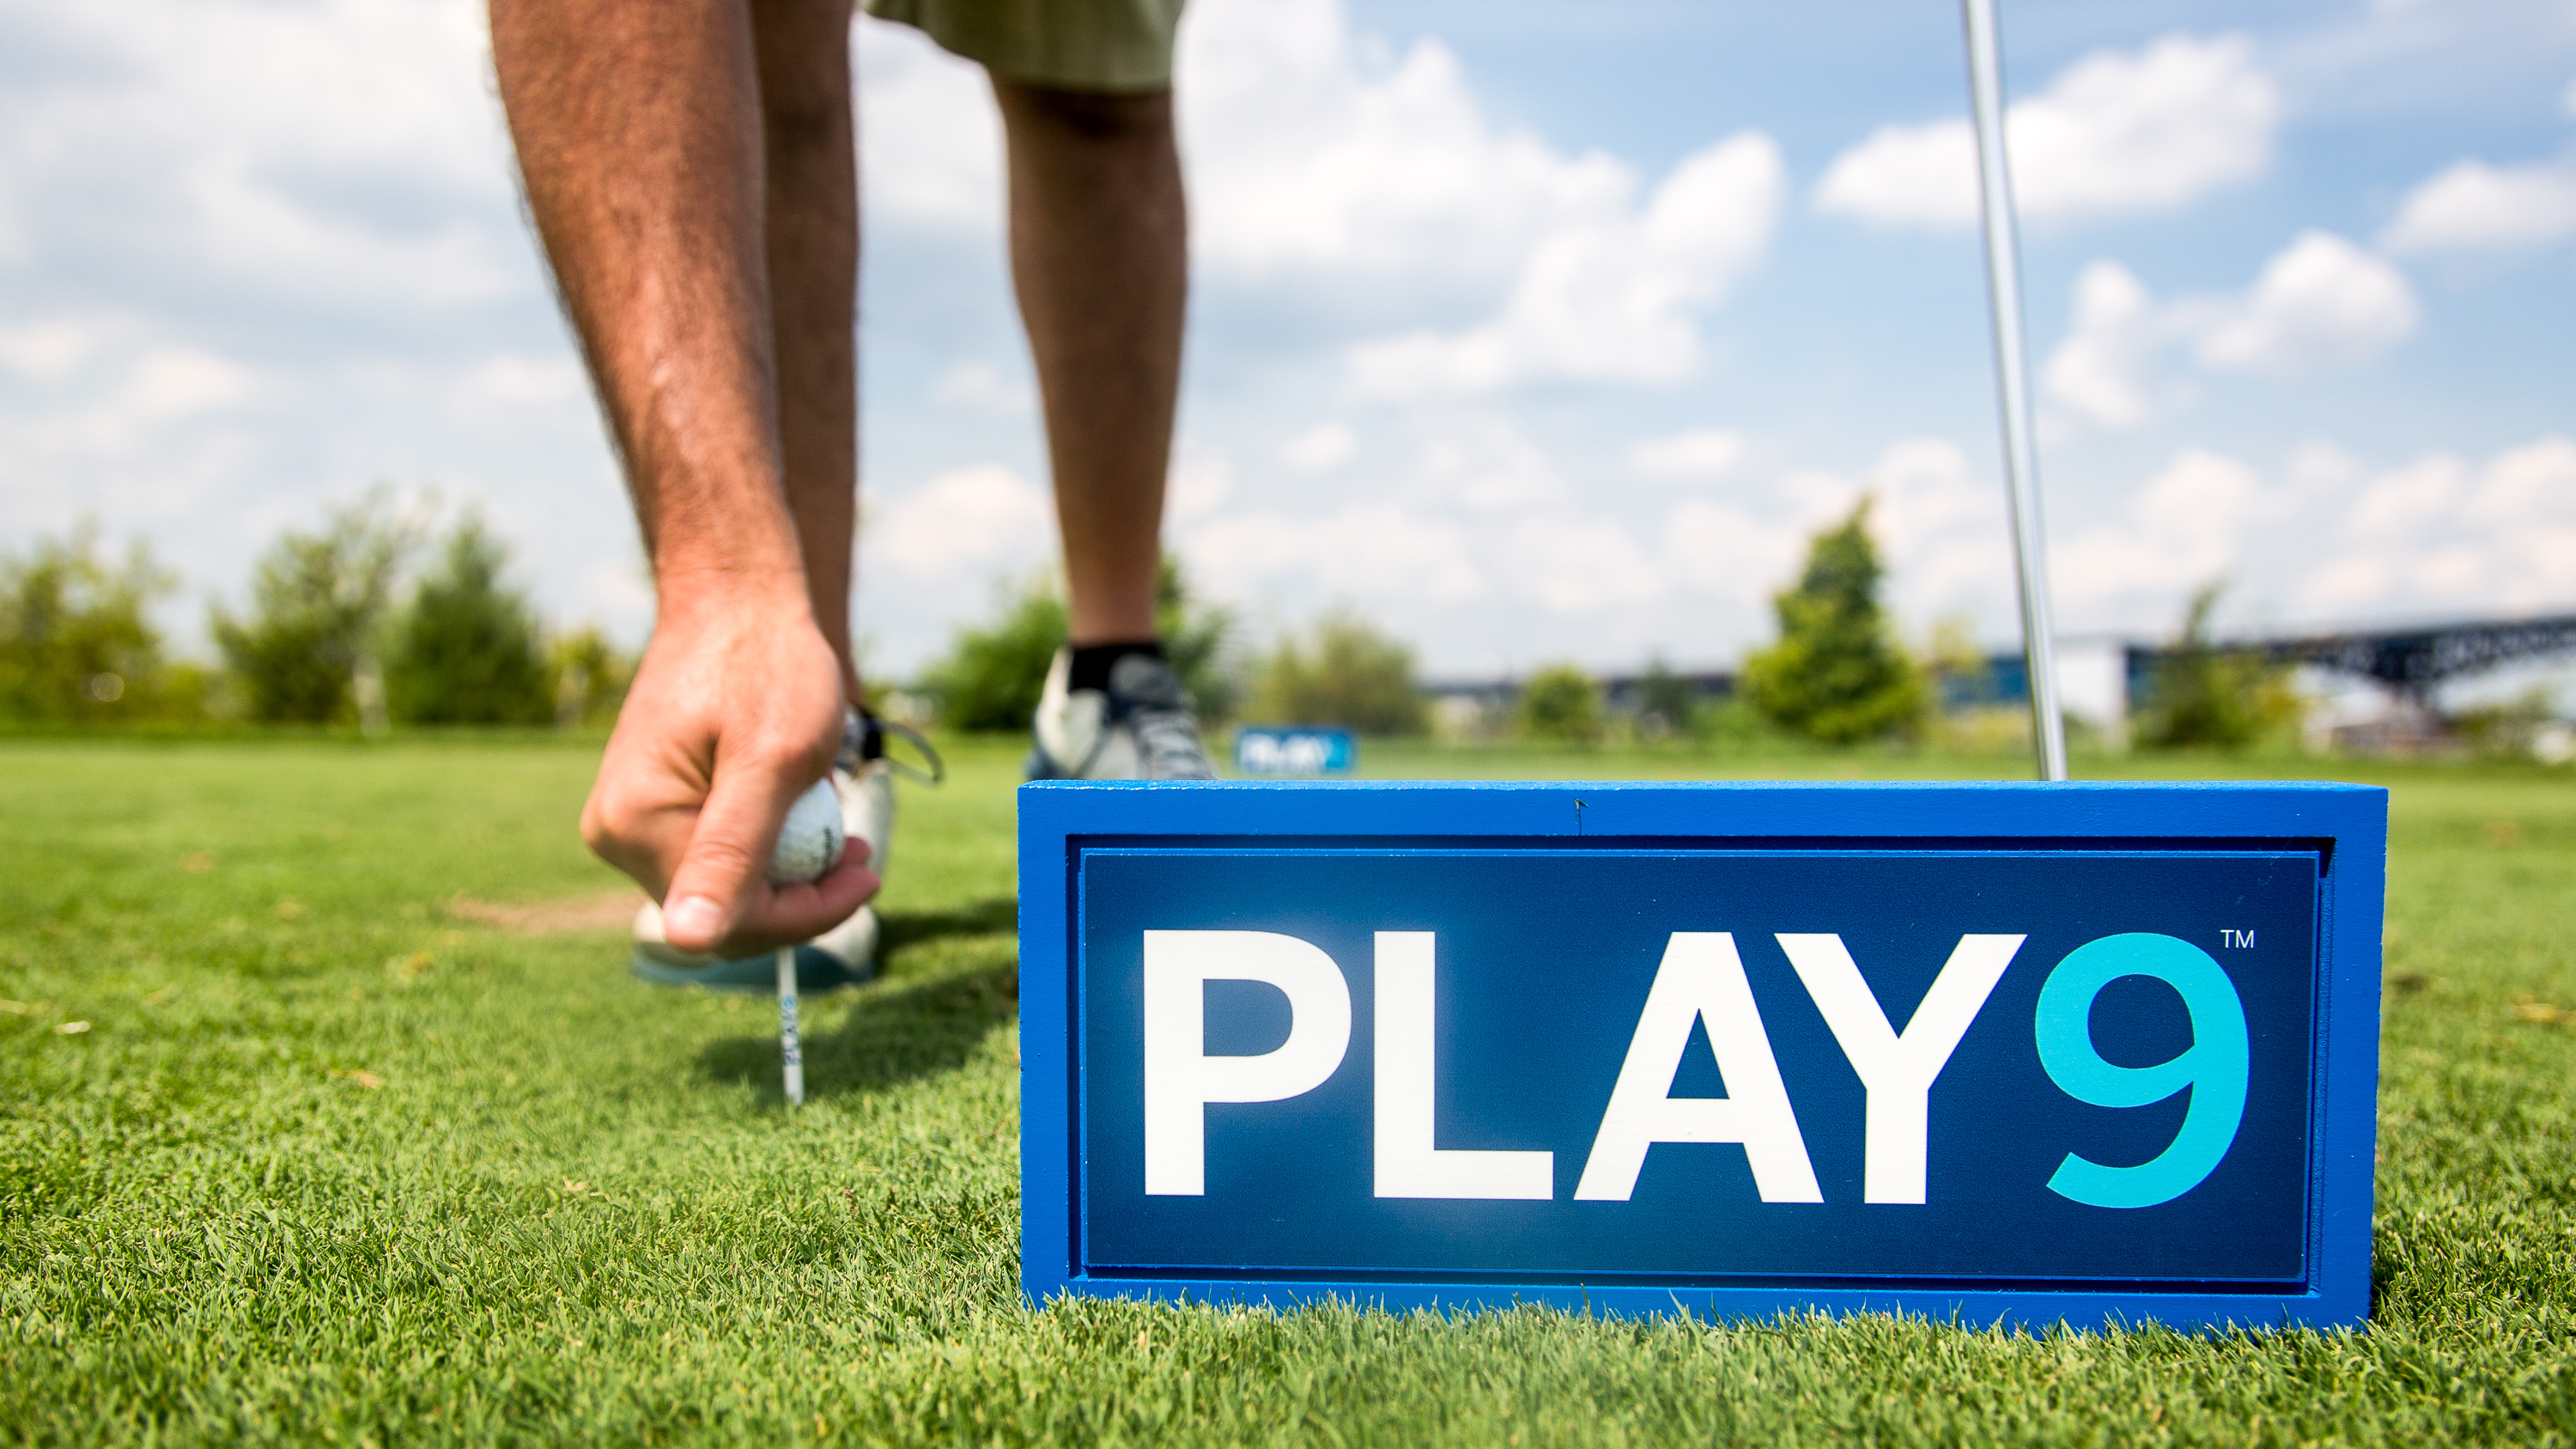 Don't have time to play all 18 holes,but want to squeeze in a quick 9-holes?